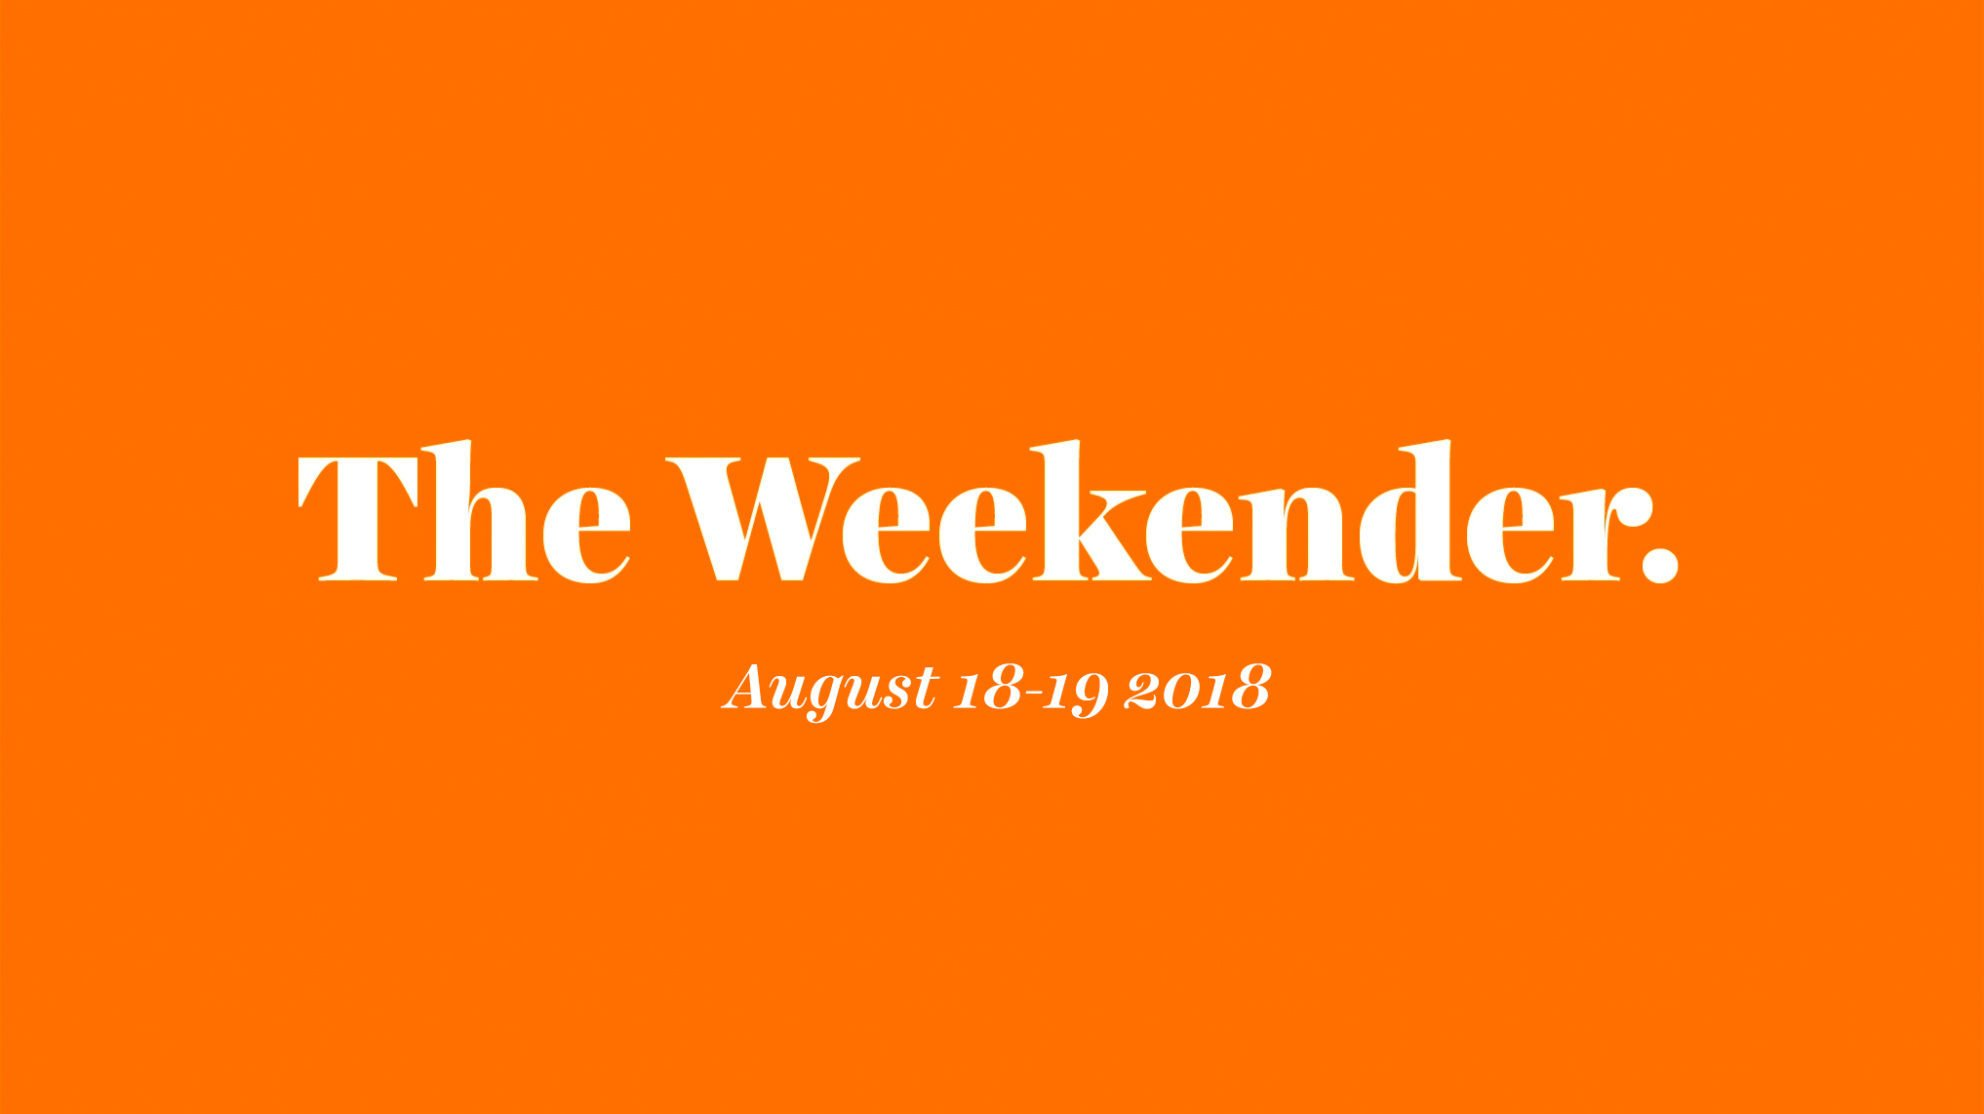 The Inman Weekender, August 18-19, 2018